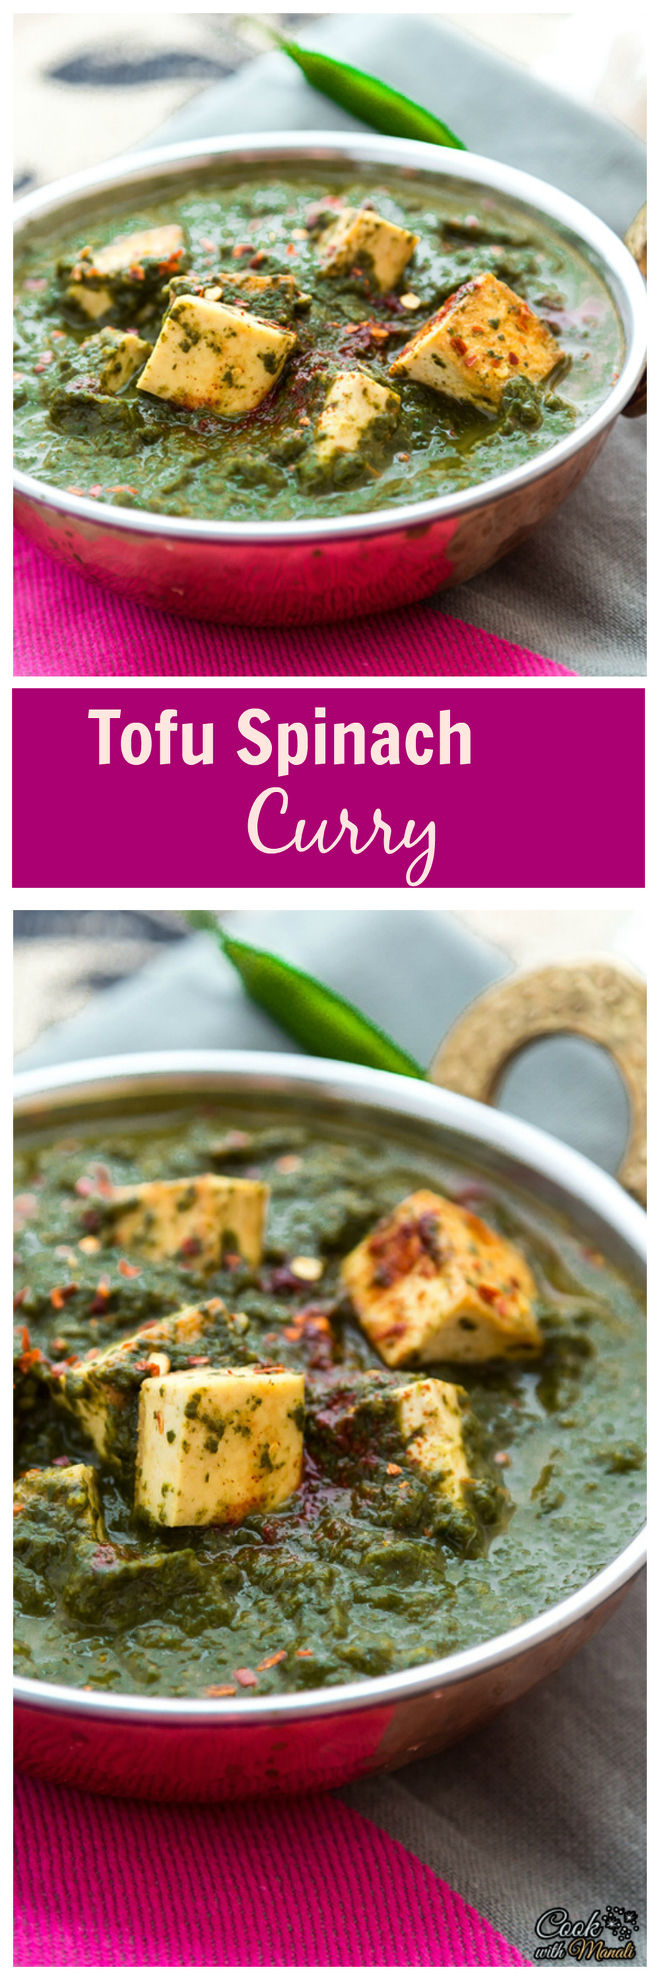 Tofu Spinach Collage-nocwm